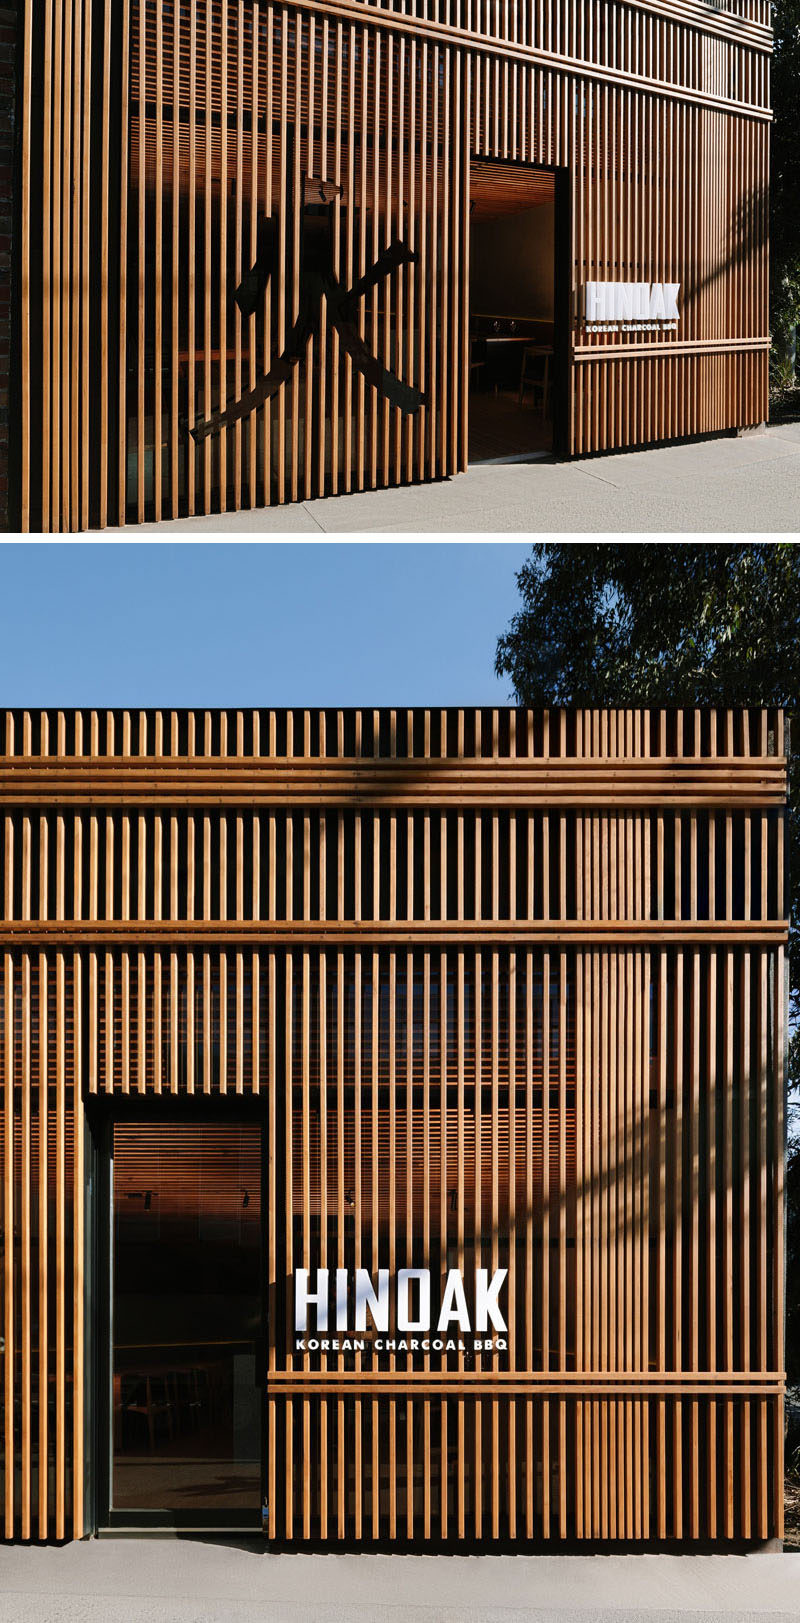 Inspired by traditional Chinese iconography and the work of Japanese architect Kengo Kuma, the facade of this modern Korean BBQ restaurant has a slatted wood exterior with a character cut-out and bright white signage. #WoodFacade #RestaurantDesign